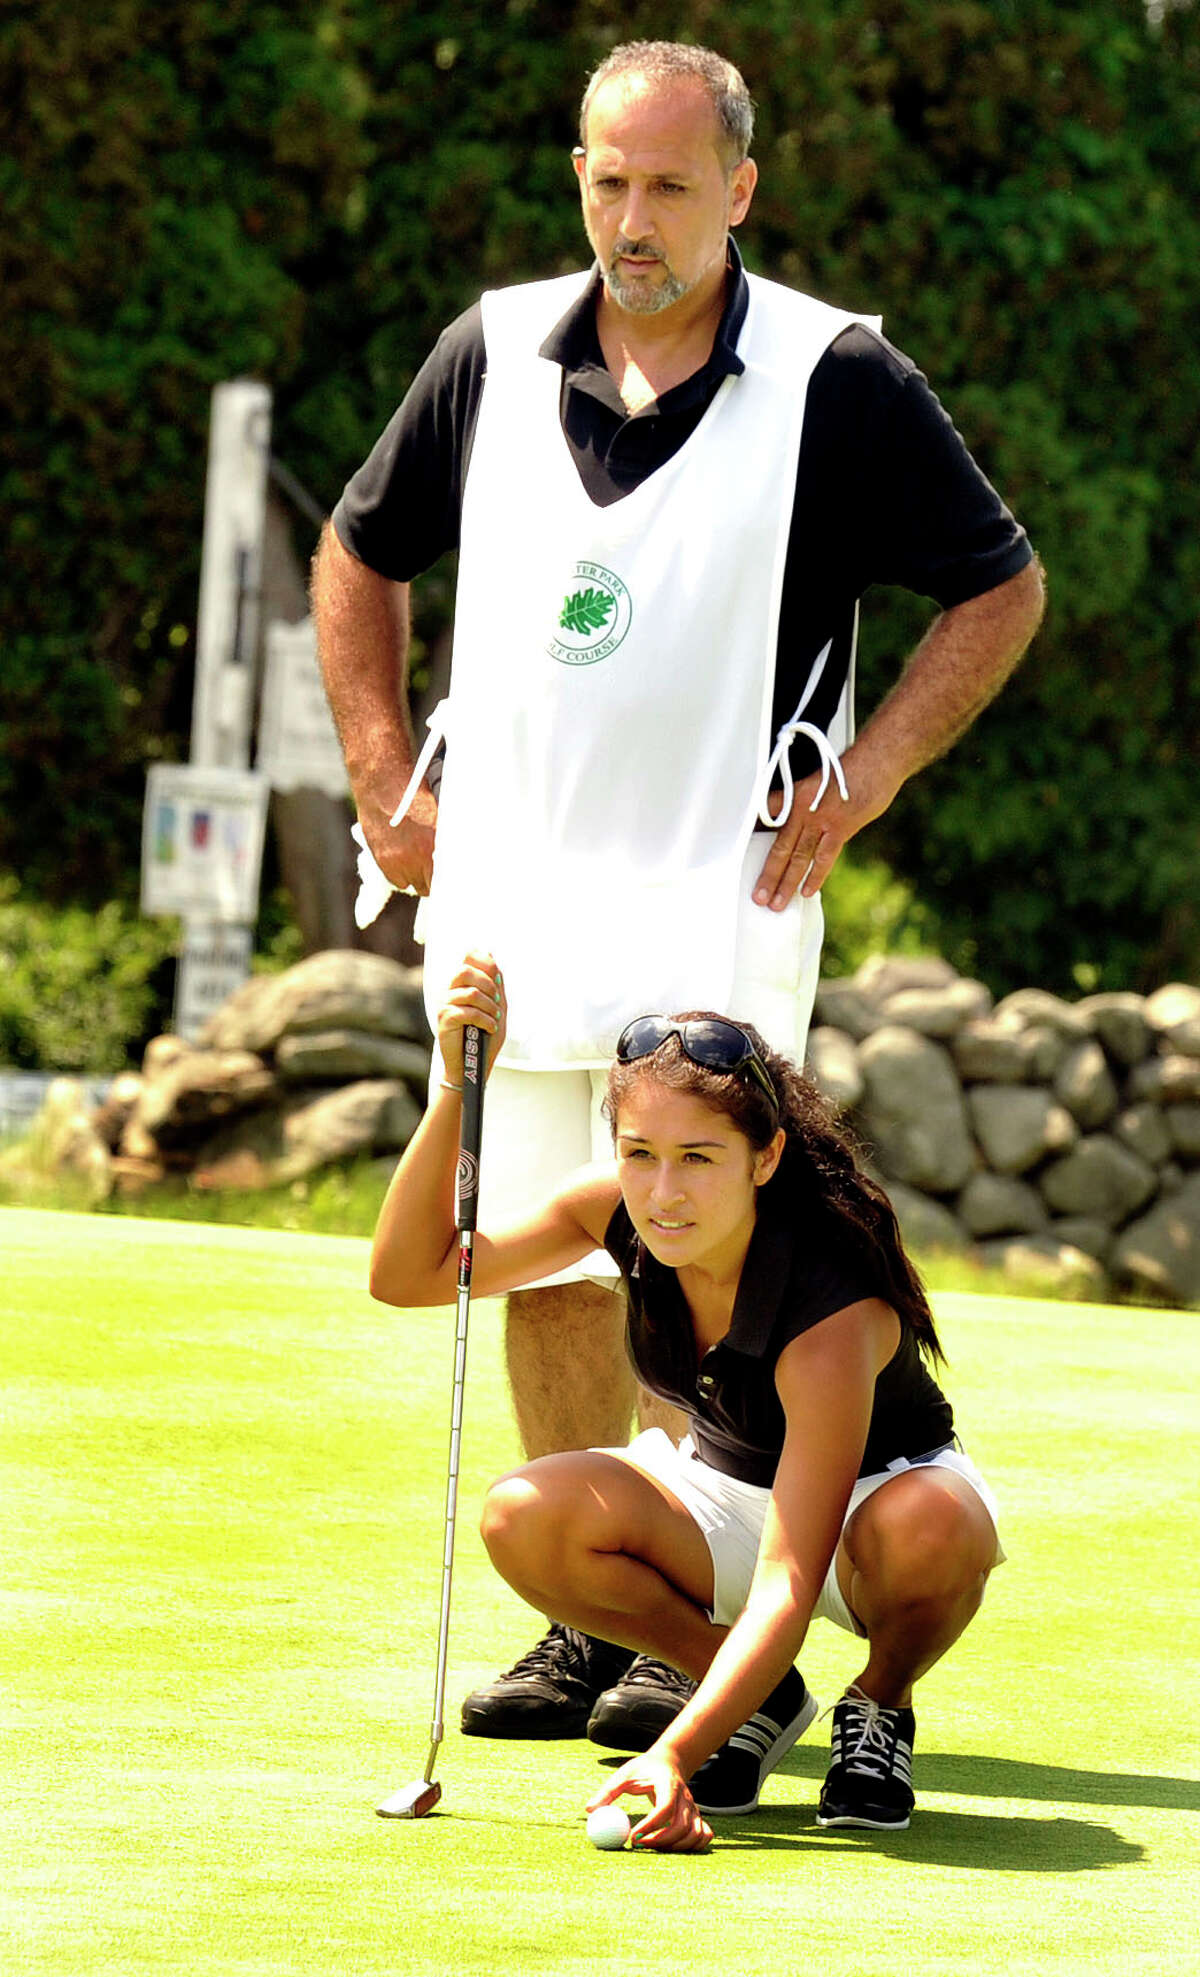 Rima Antous plays in the 22nd Annual Danbury Amateur golf championship at Richter Park Golf Course Sunday, July 22, 2012.